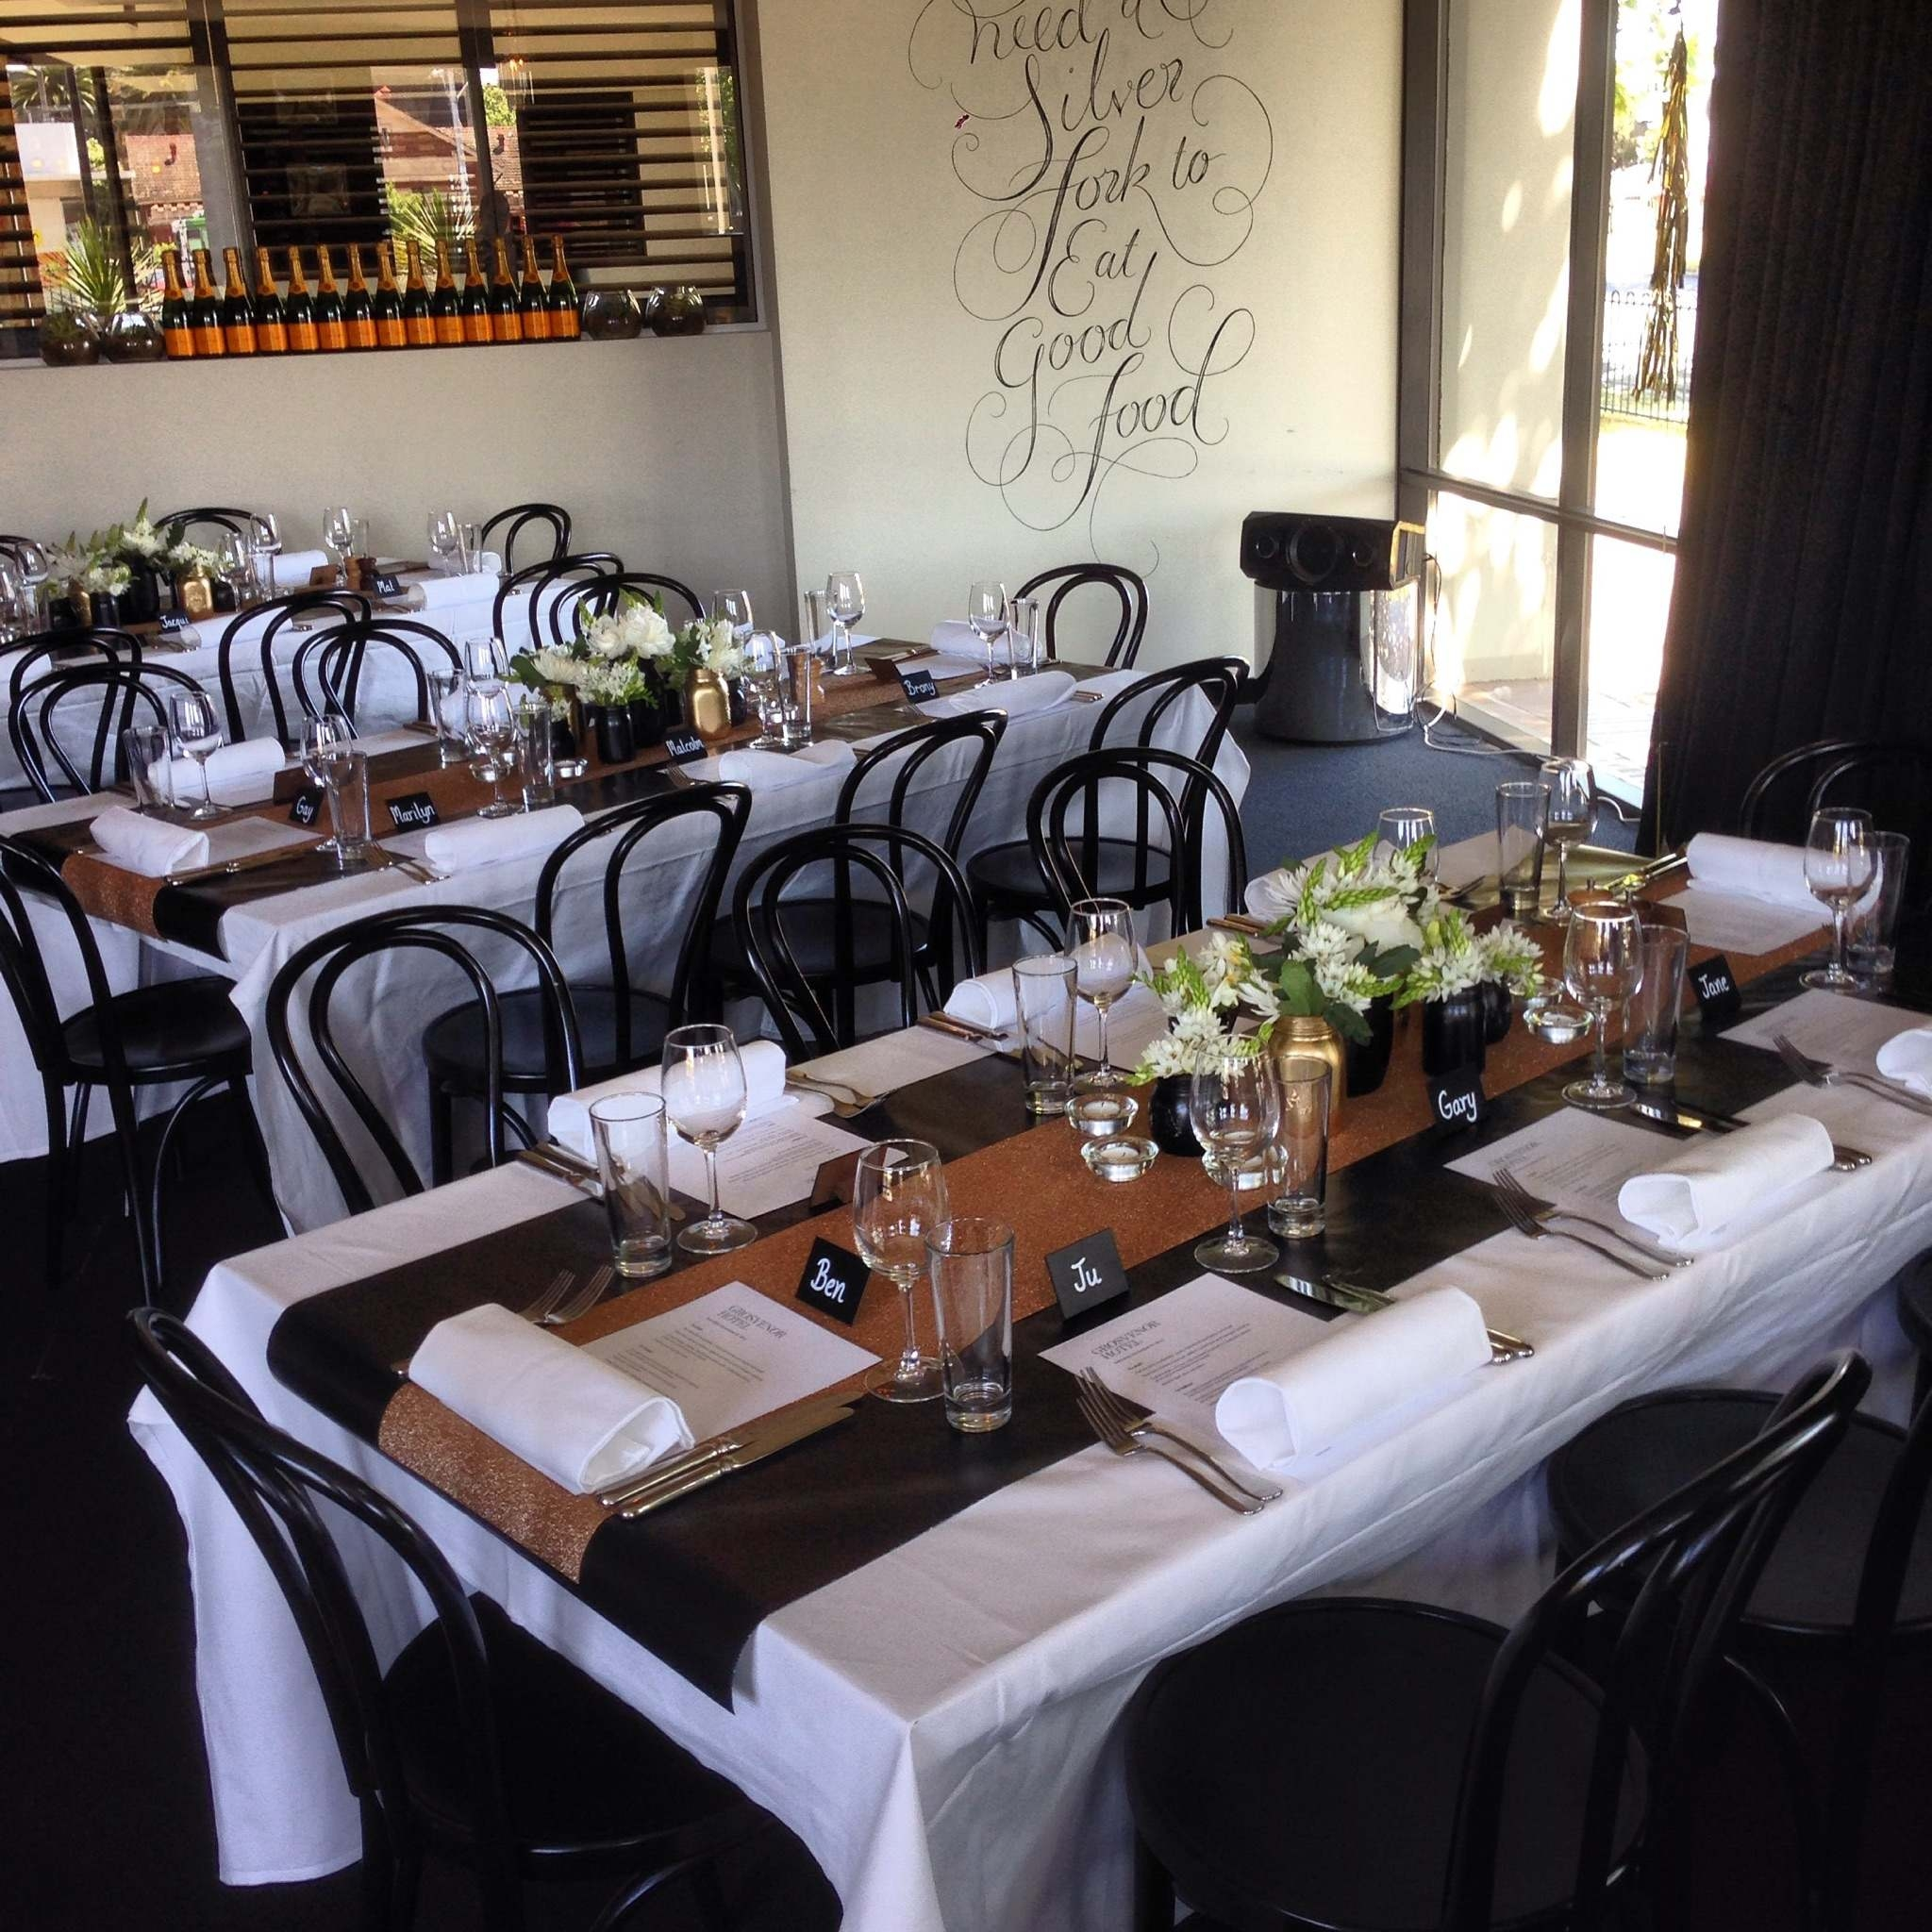 Private Dining Room Special Event.JPG